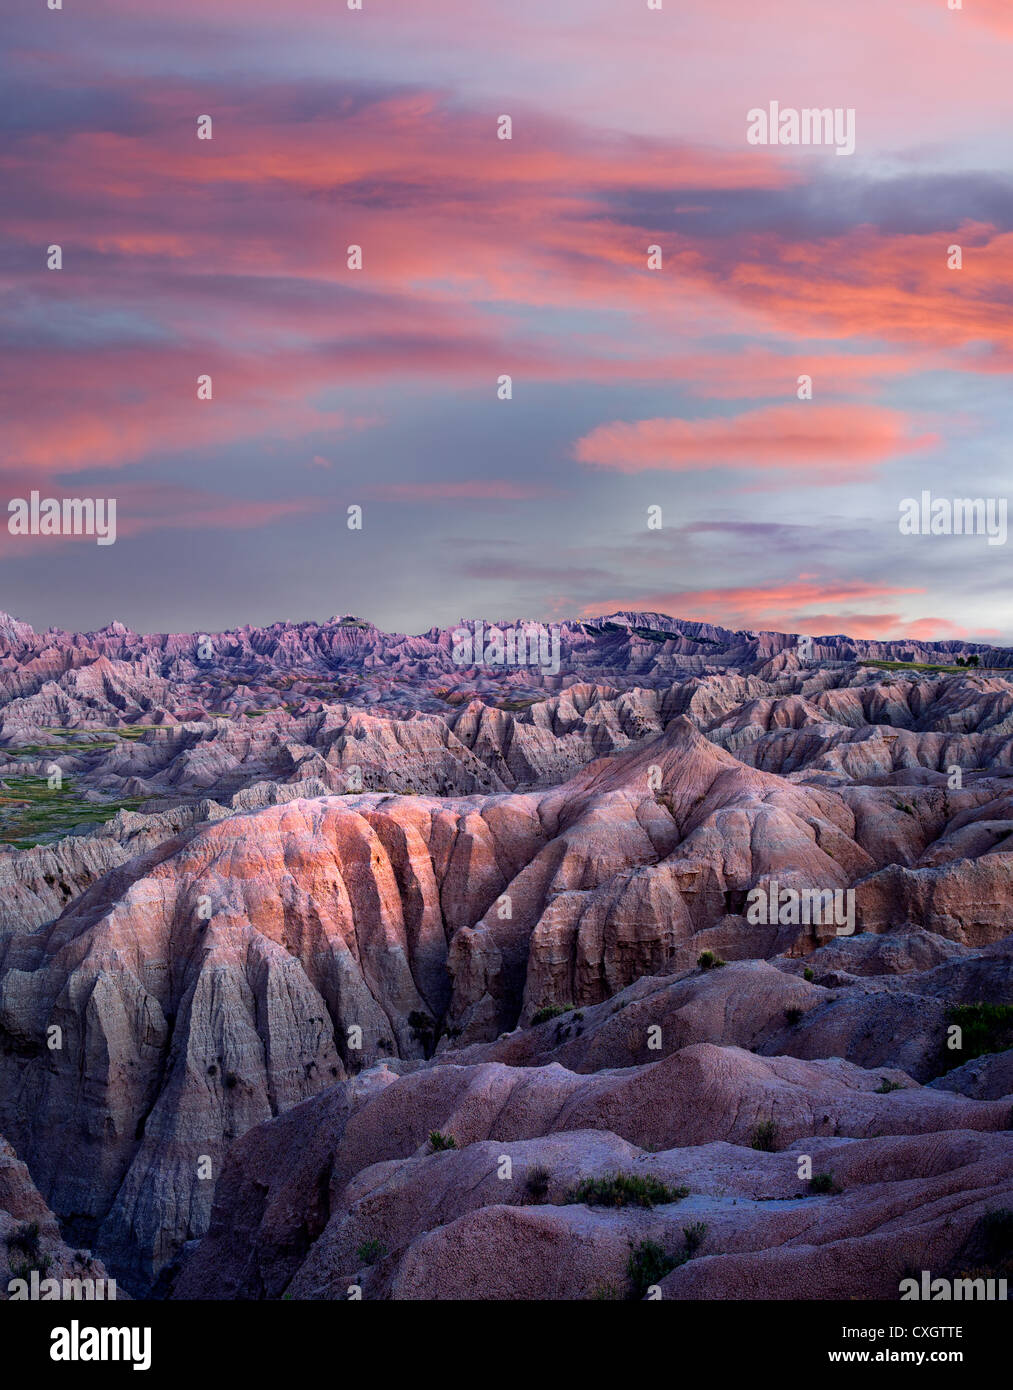 Formations colorées dans Badlands National Park (Dakota du Sud) Photo Stock